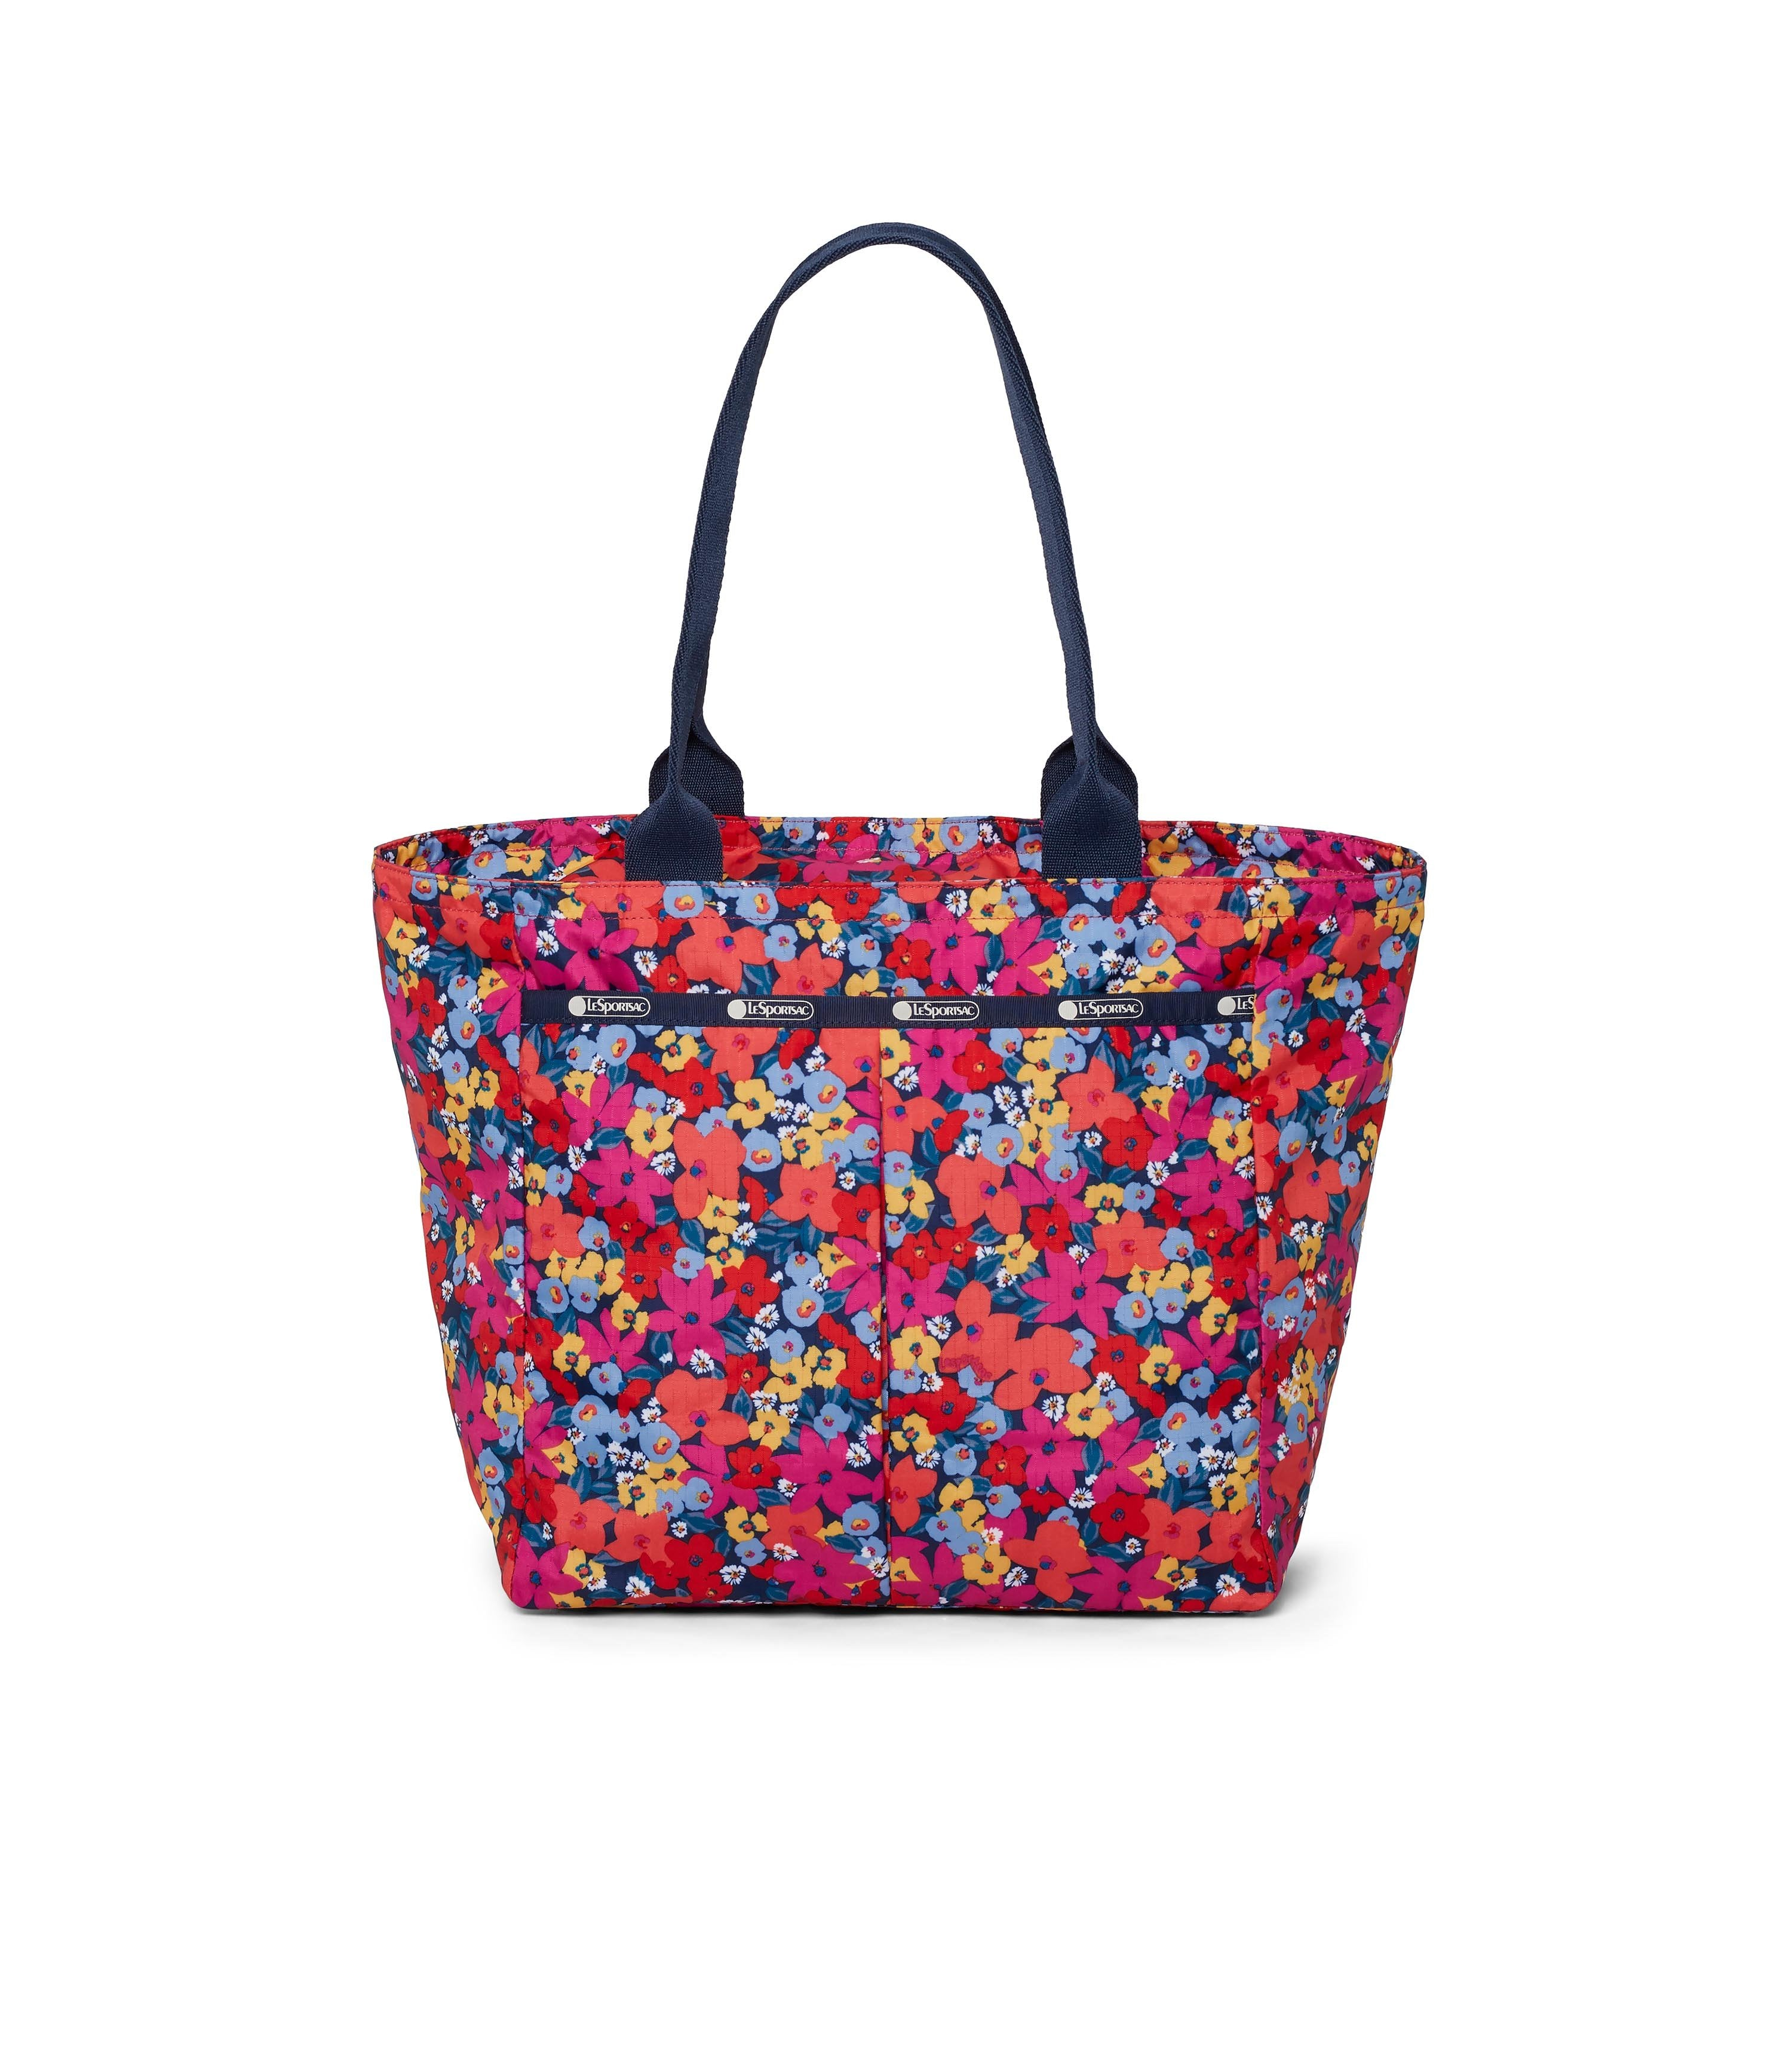 LeSportsac - Traveling EveryGirl Tote - Totes - Bright Isle Floral print